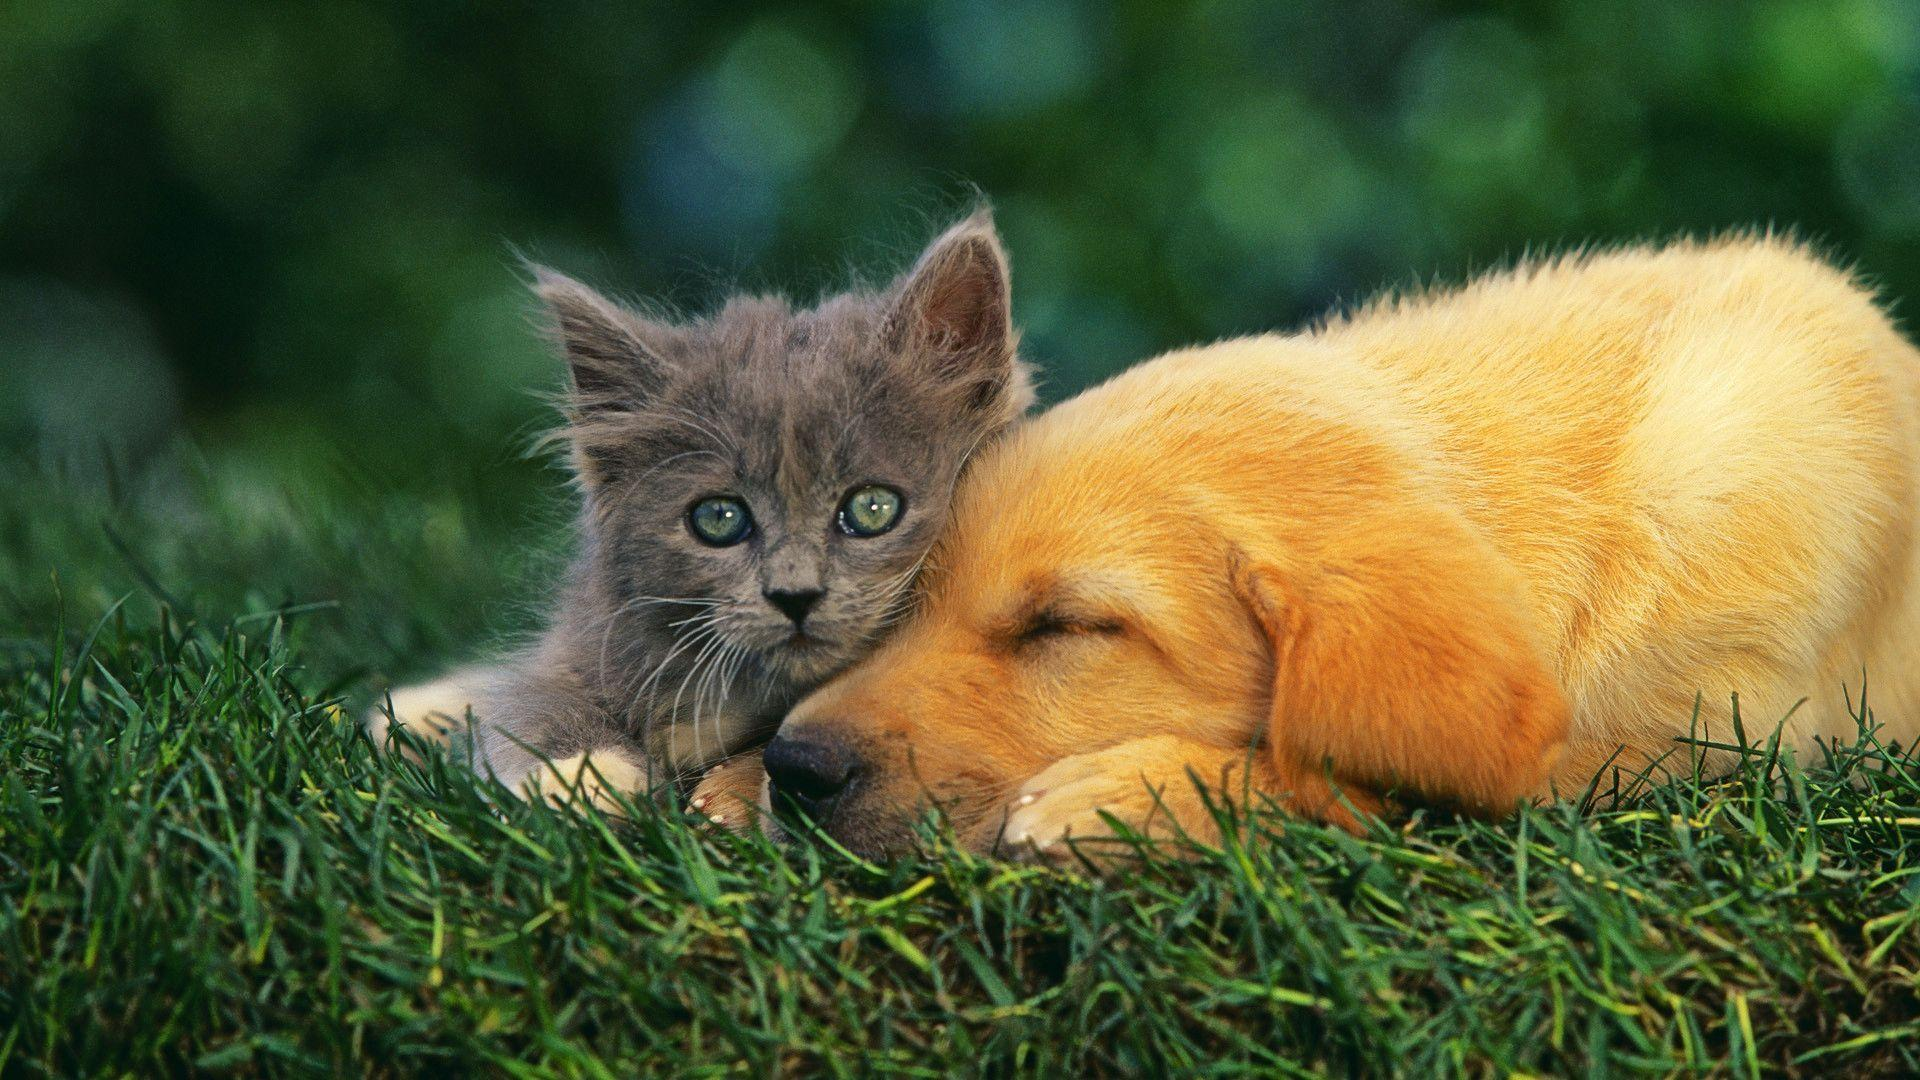 cat And Dog Love Wallpaper : Dog And cat Wallpapers - Wallpaper cave